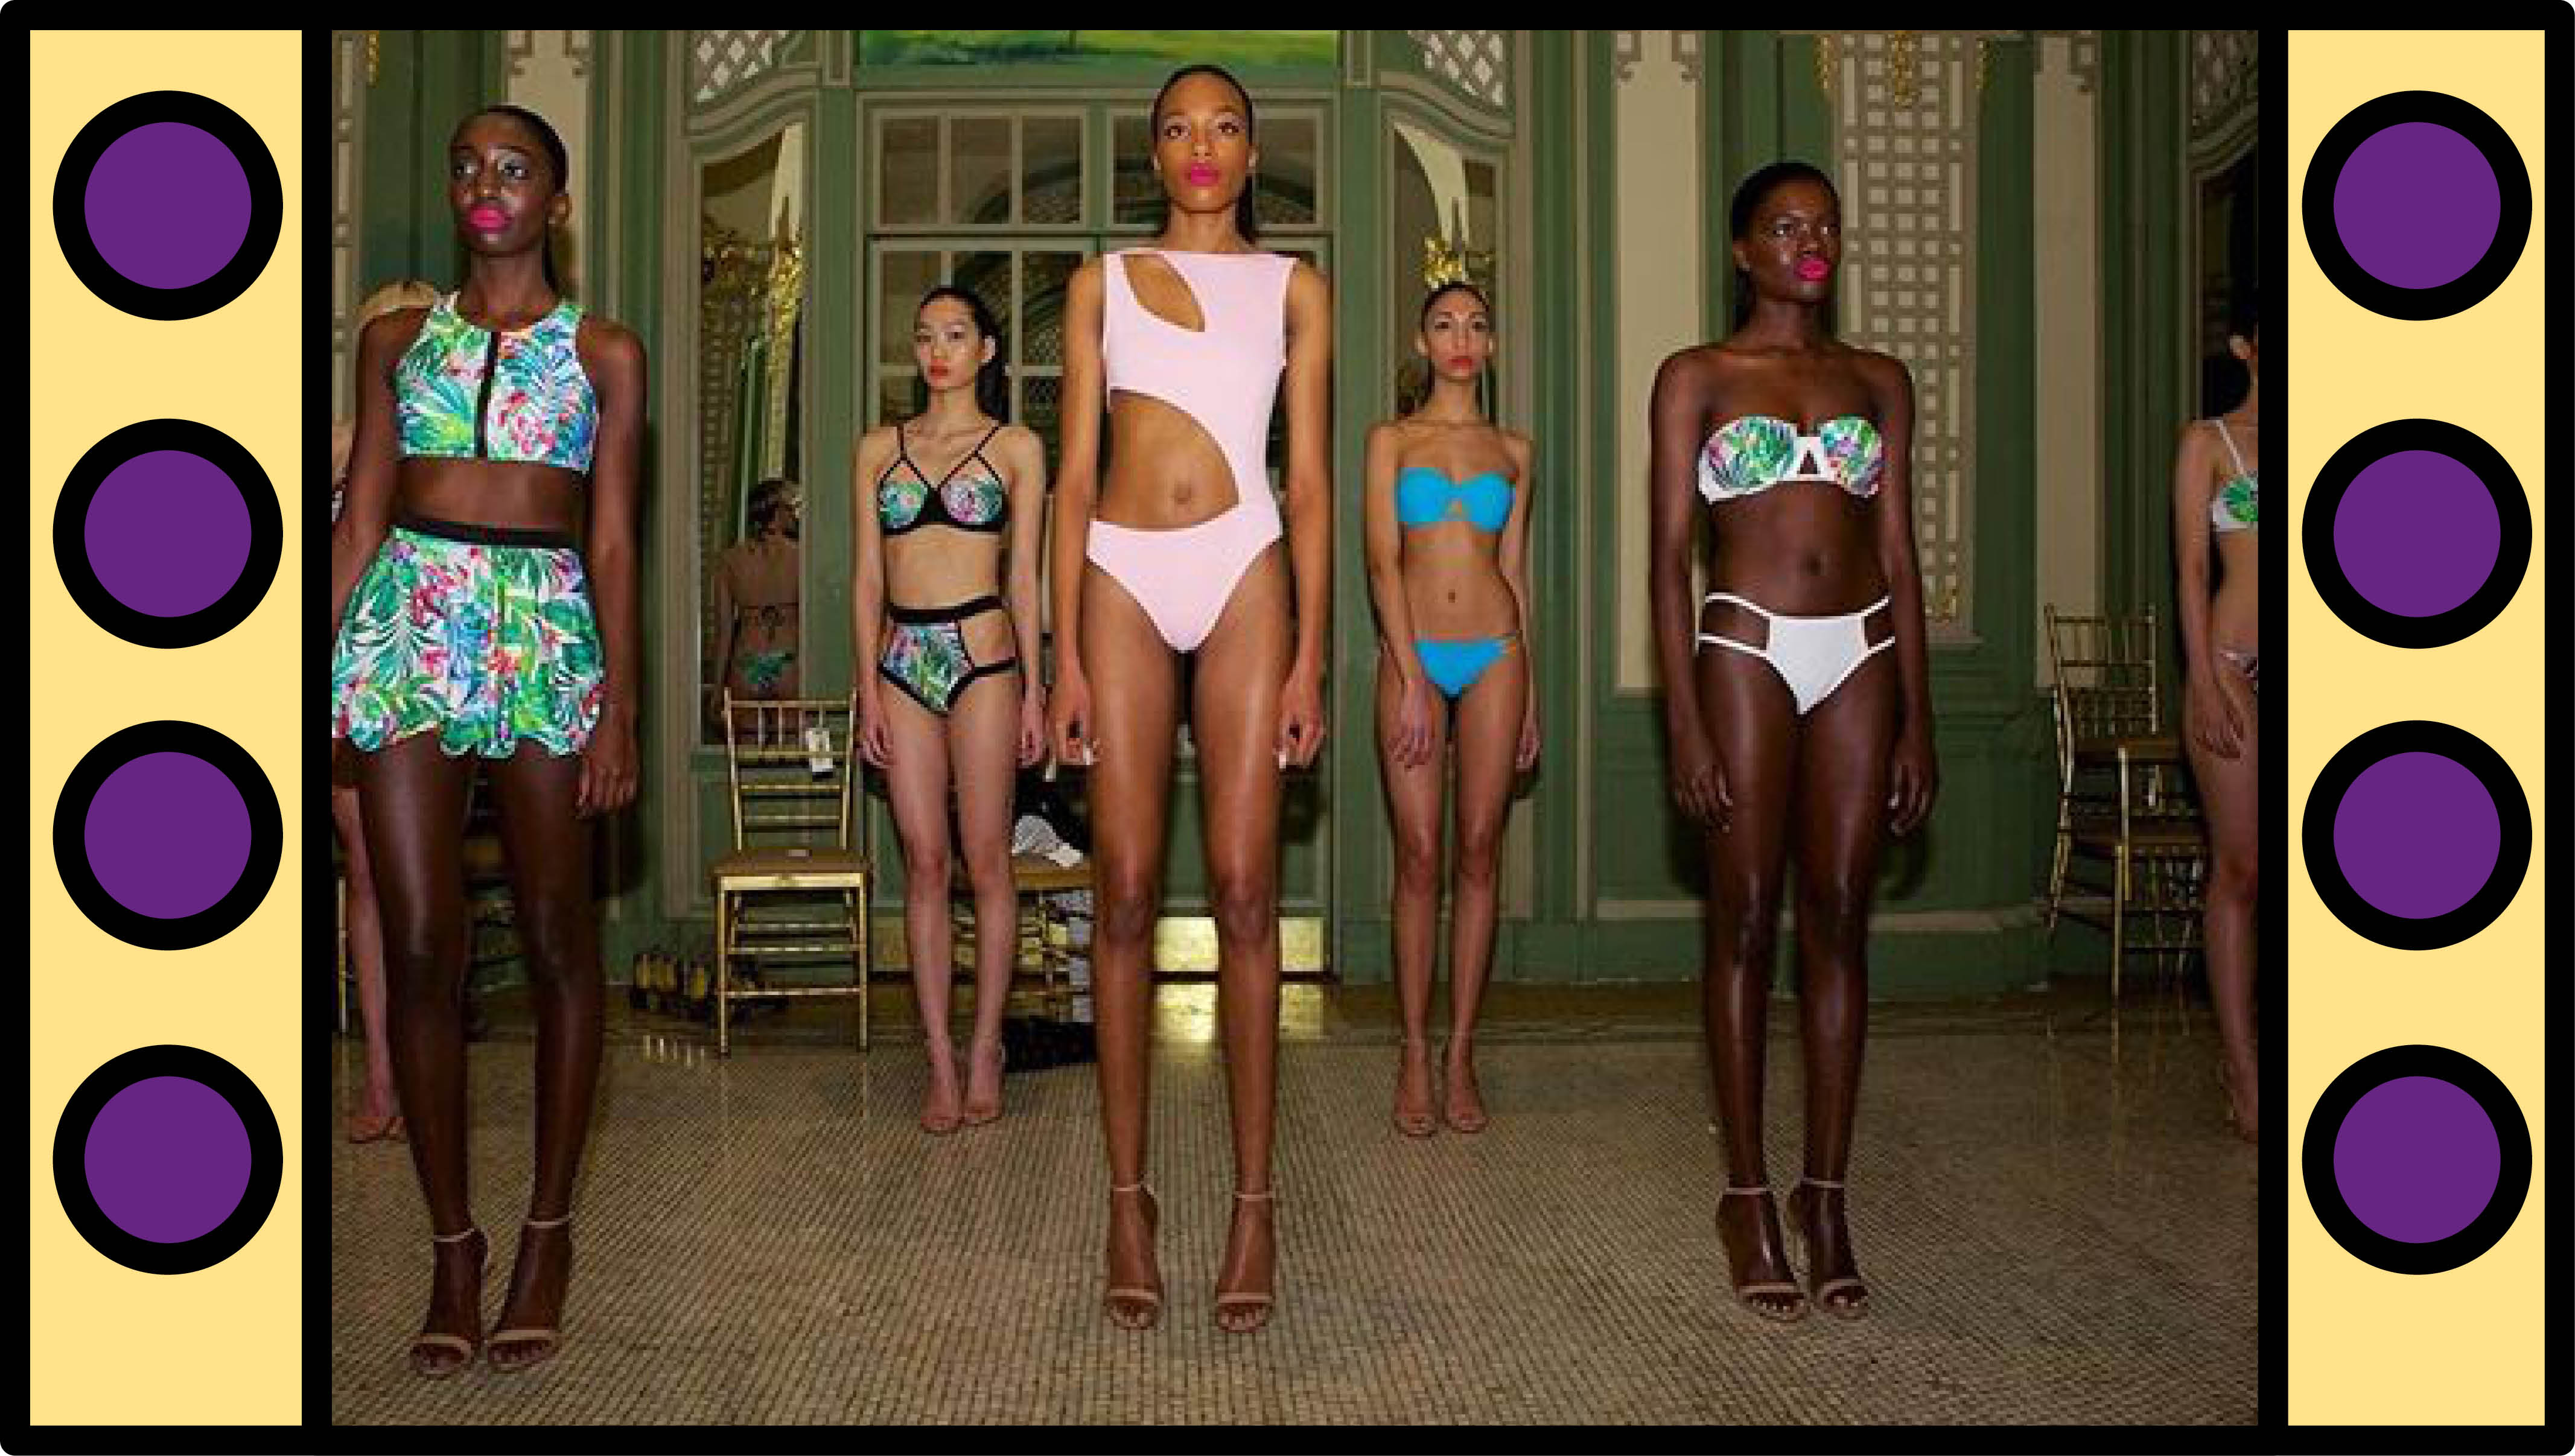 f176ab4a56b74 7 Swimwear Lines by Women of Colour - distinguished diva